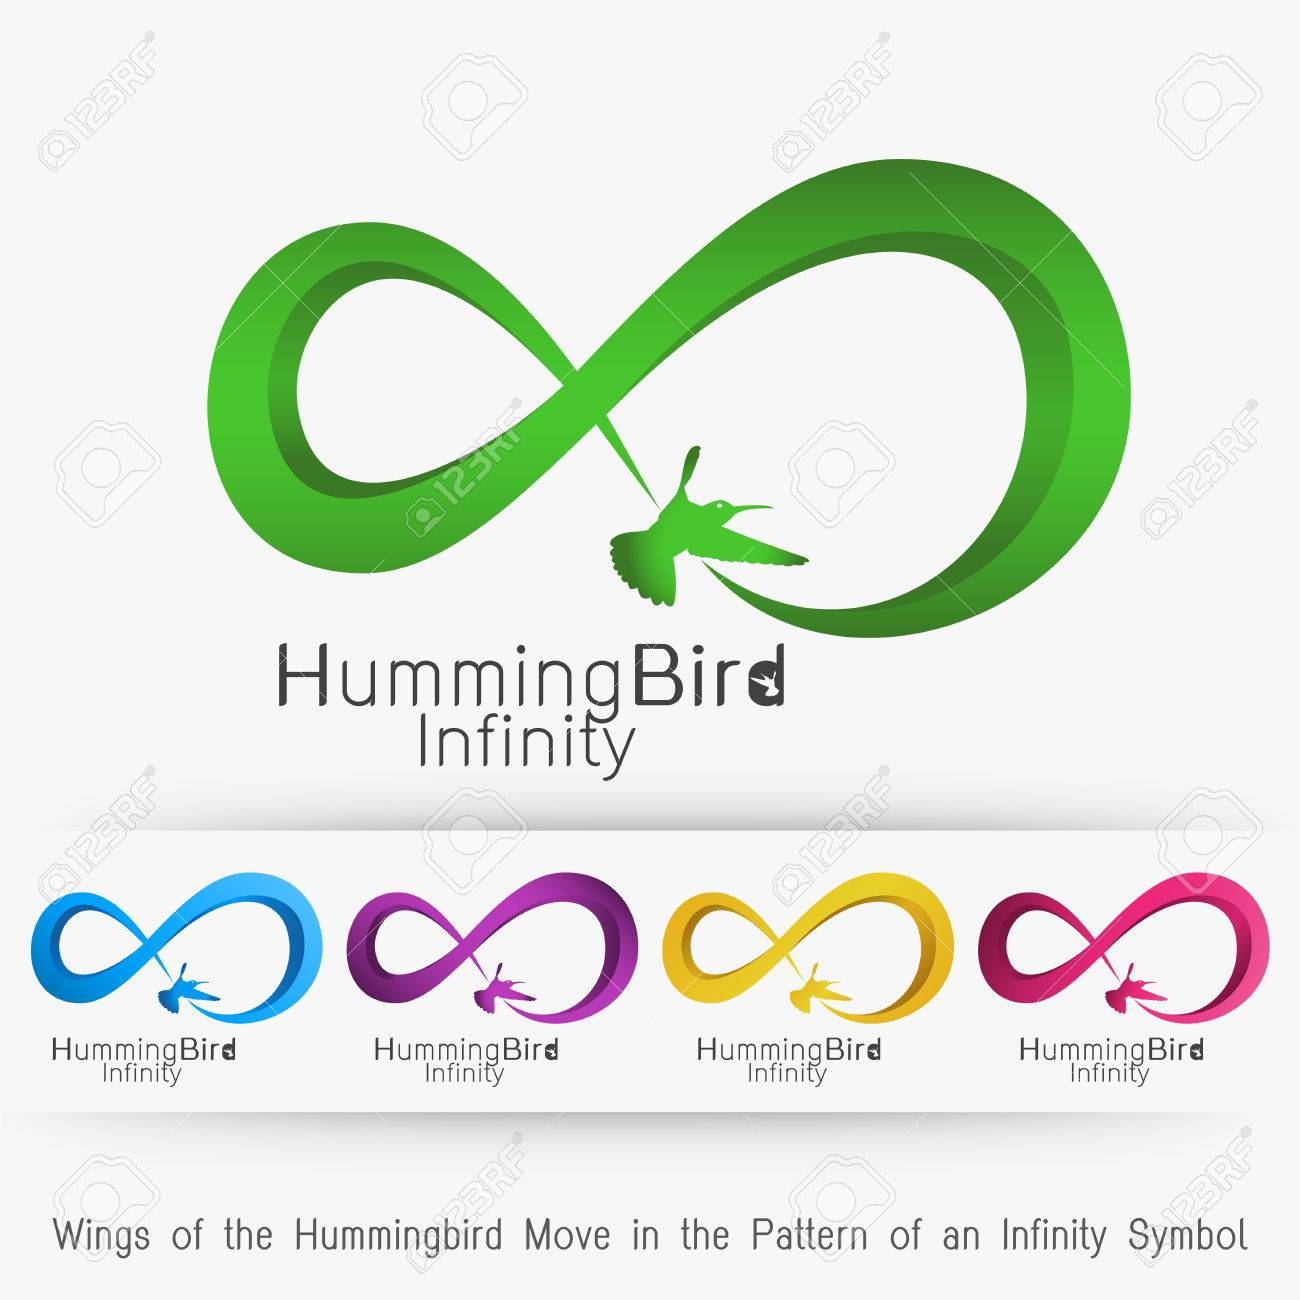 Wings Of The Hummingbird Move In The Pattern Of An Infinity Symbol